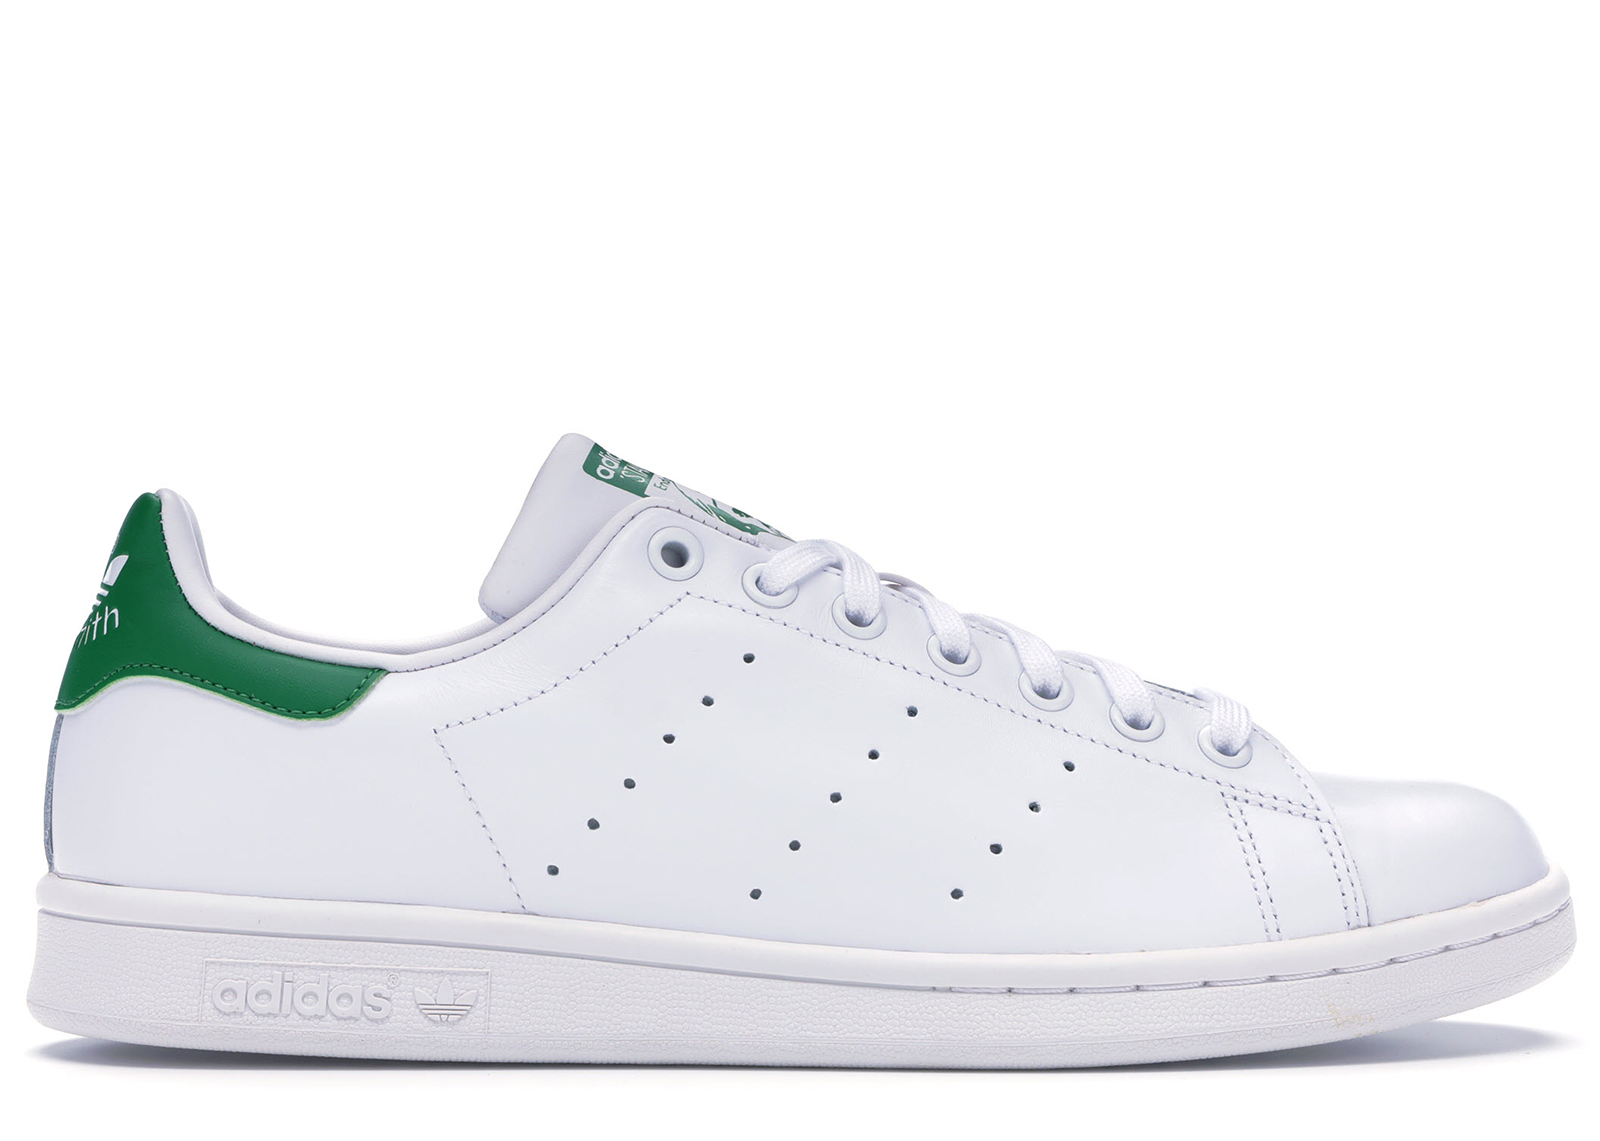 adidas Stan Smith White Green (OG)